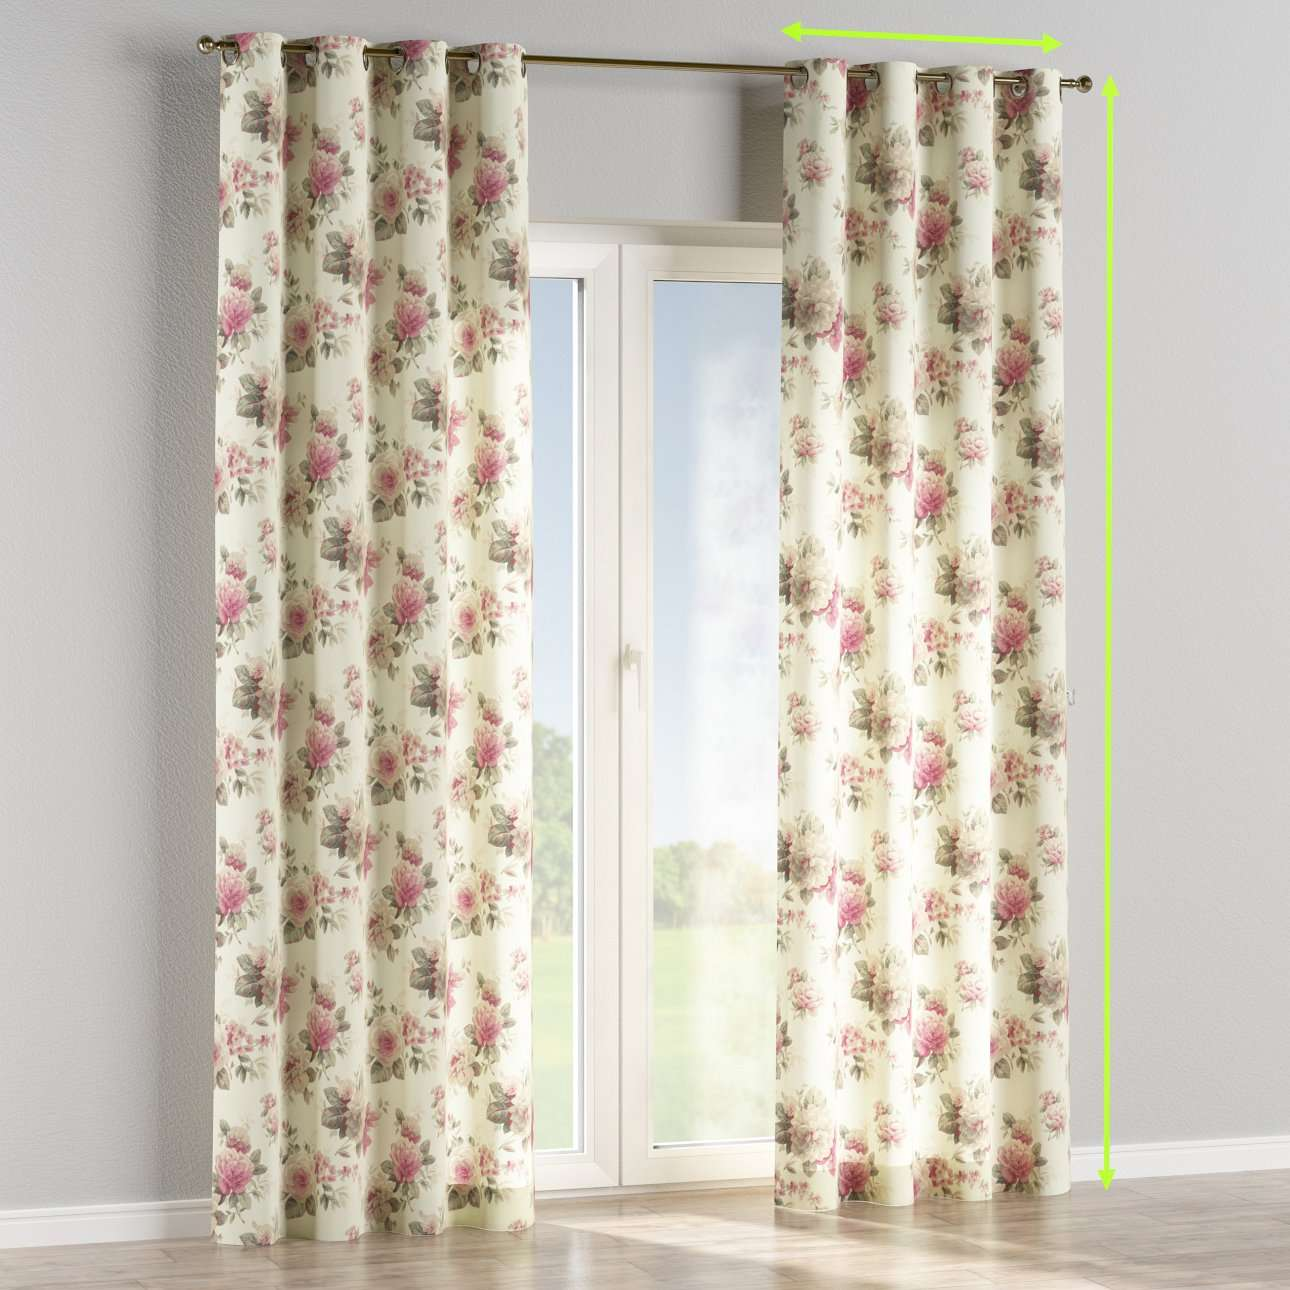 Eyelet curtains in collection Mirella, fabric: 141-07